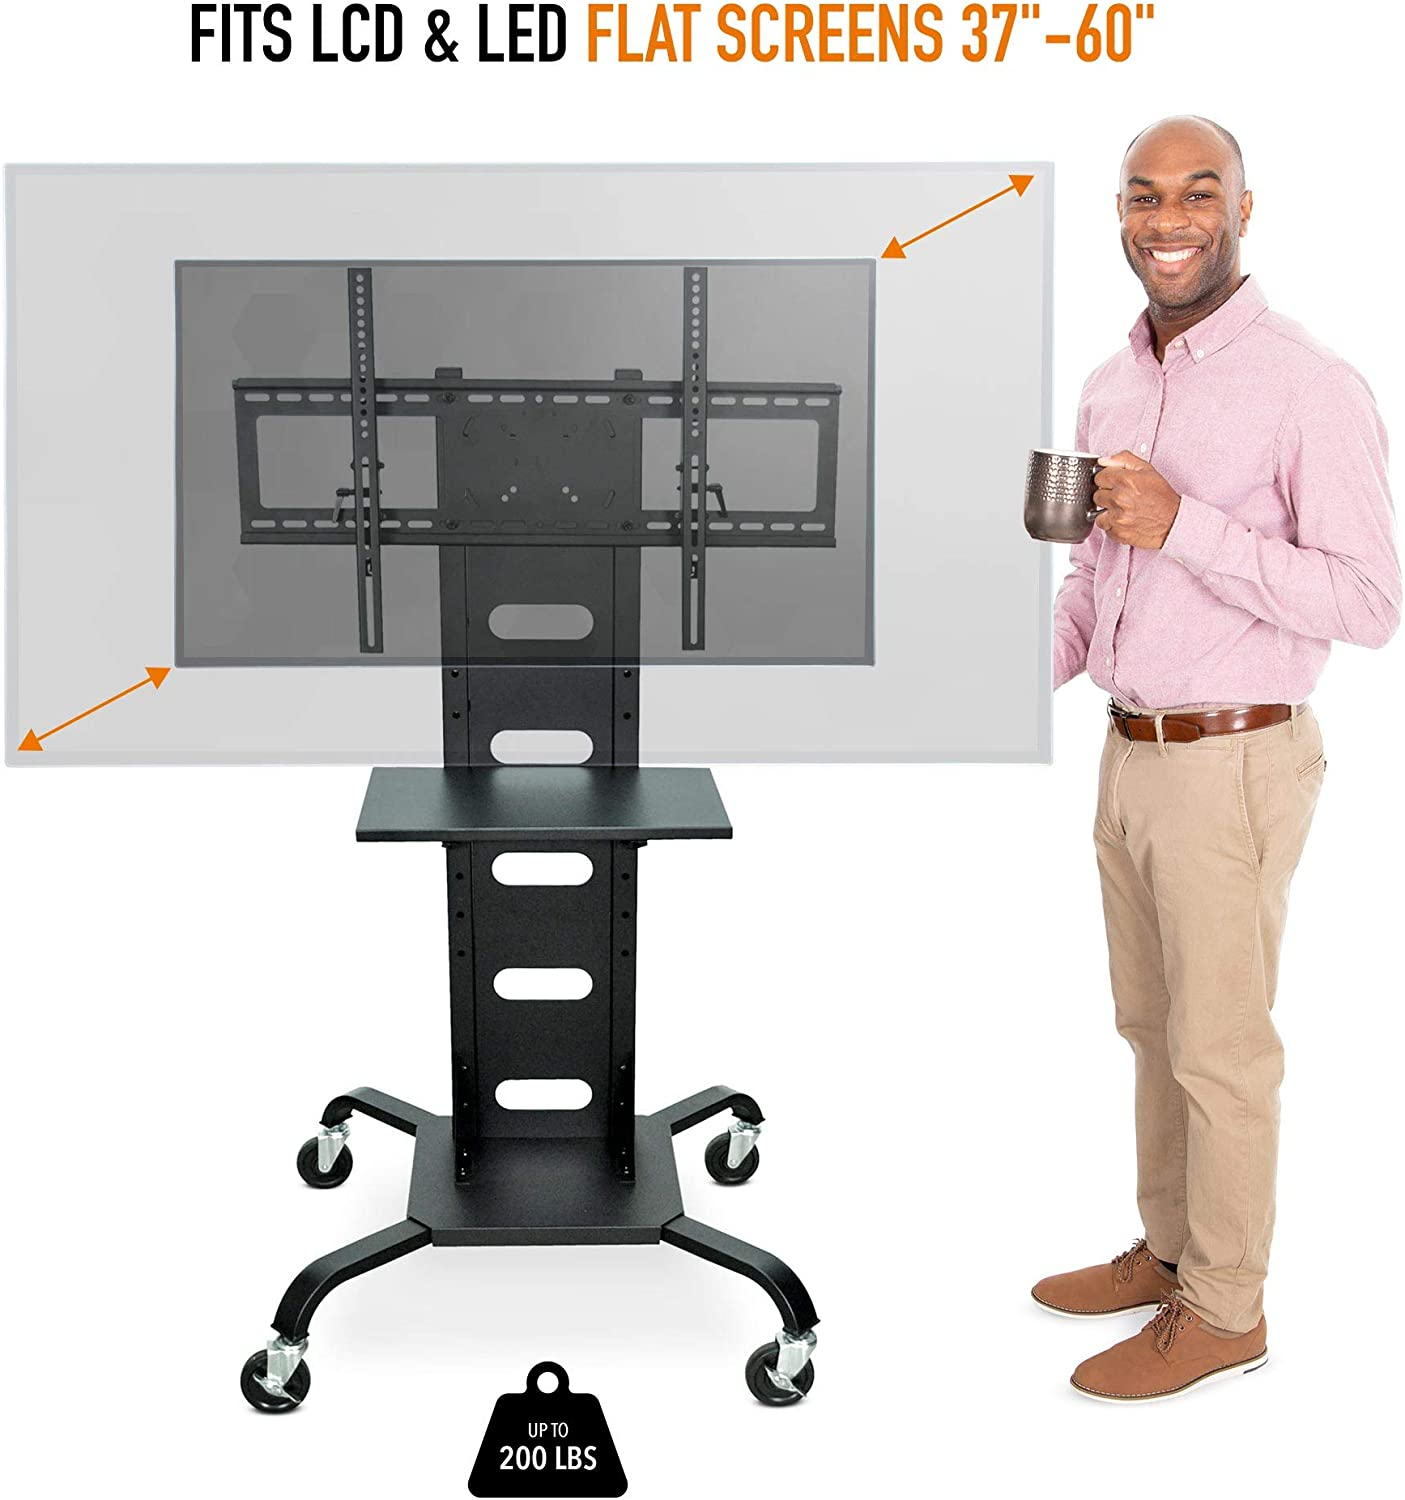 Line Leader Heavy Duty TV Stand | Mobile Television Cart with Locking Wheels & Storage Shelf | Tilting VESA Mount - Supports LCD & LED Flat Screen TVs from 37 Inches to 60 Inches : Electronics